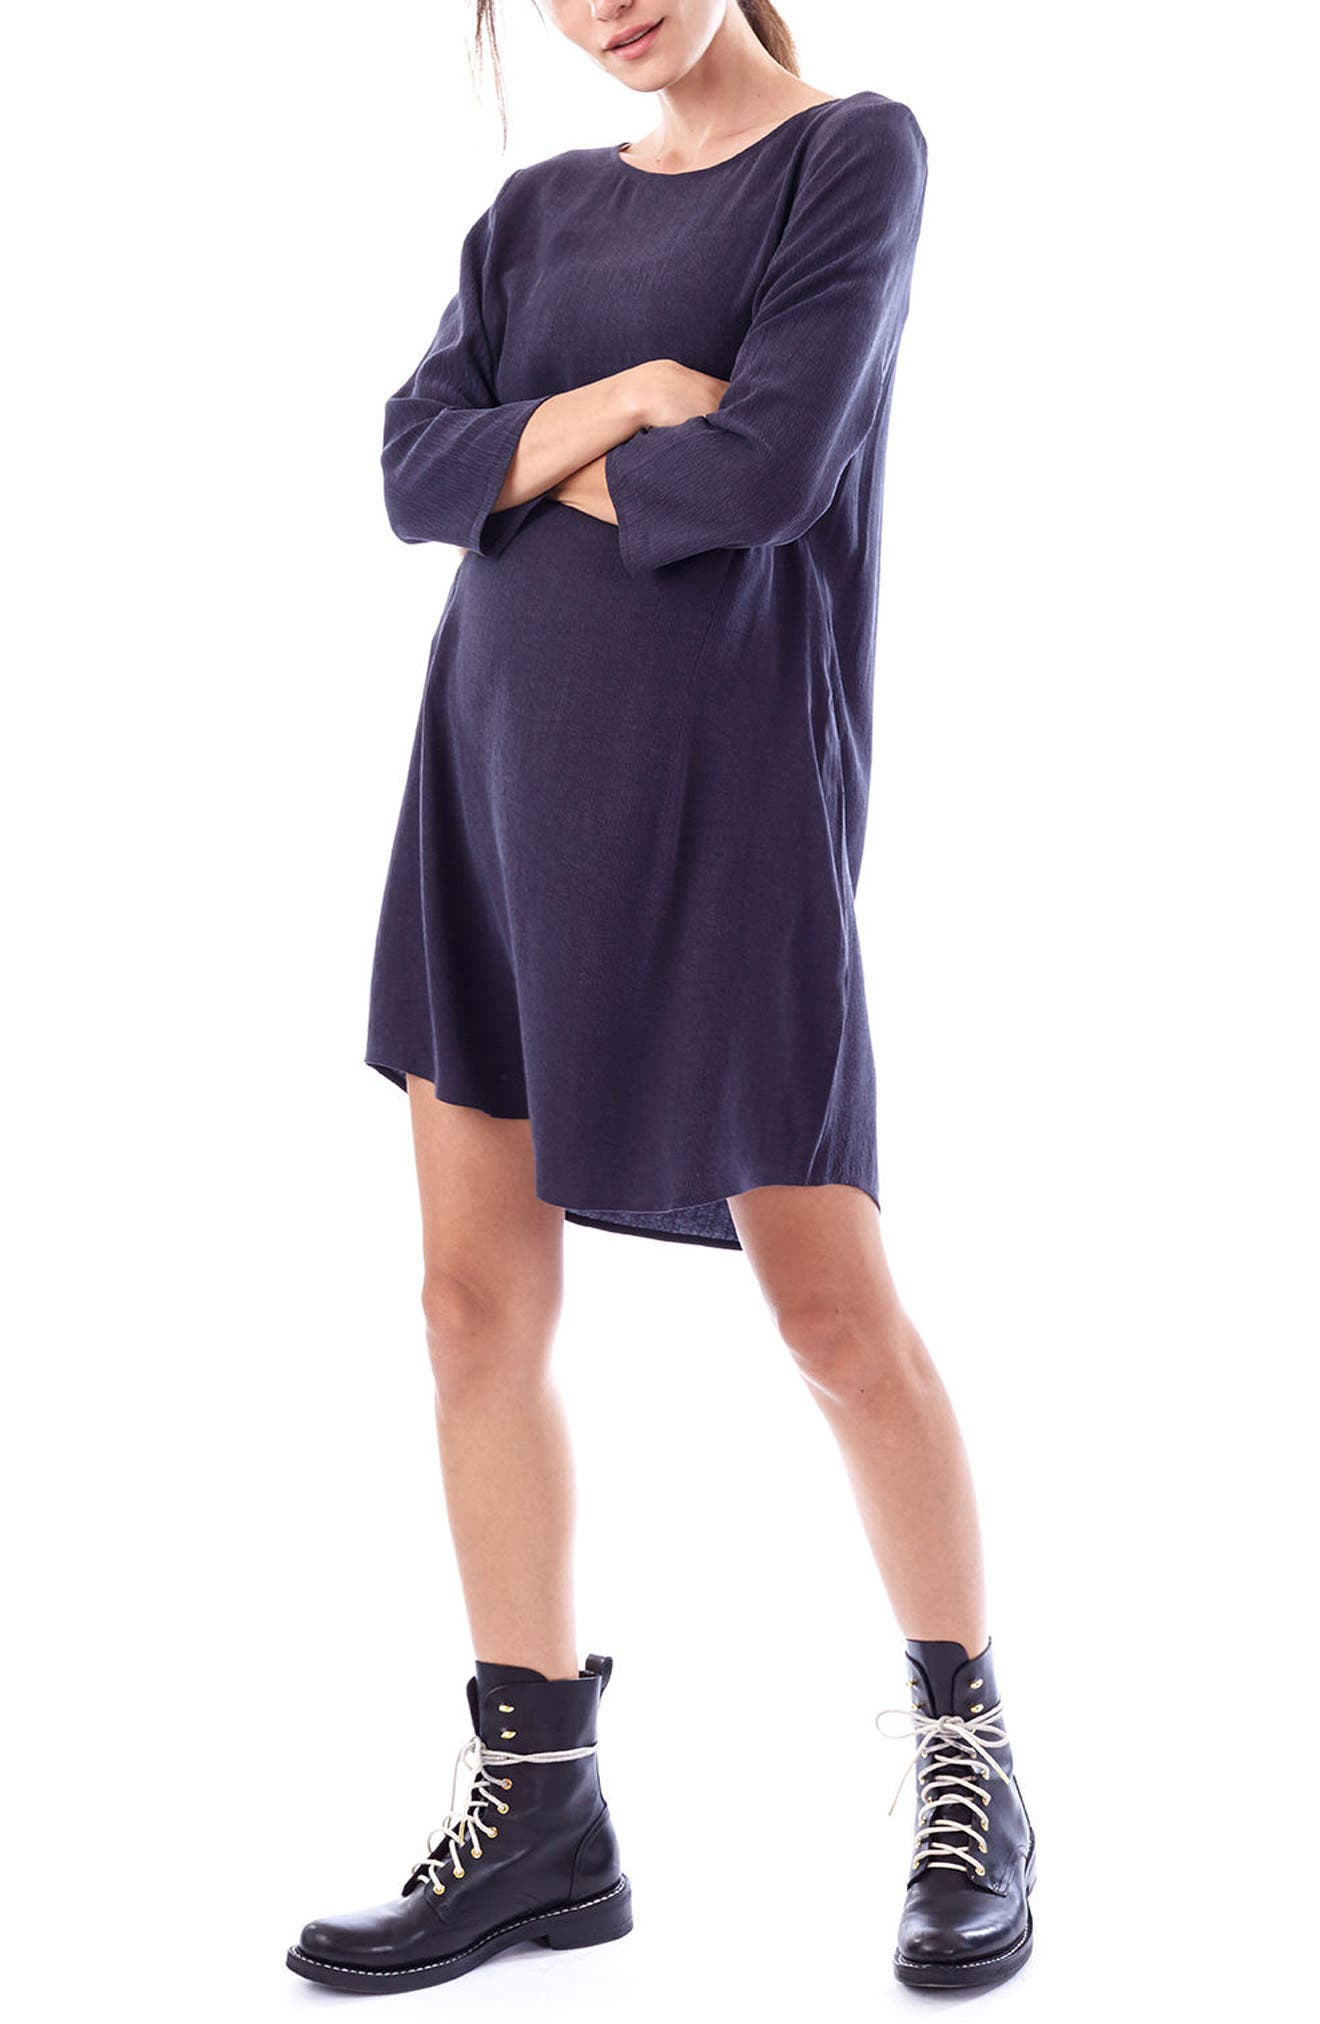 Layla Maternity/Nursing Dress,                         Main,                         color, CHARCOAL